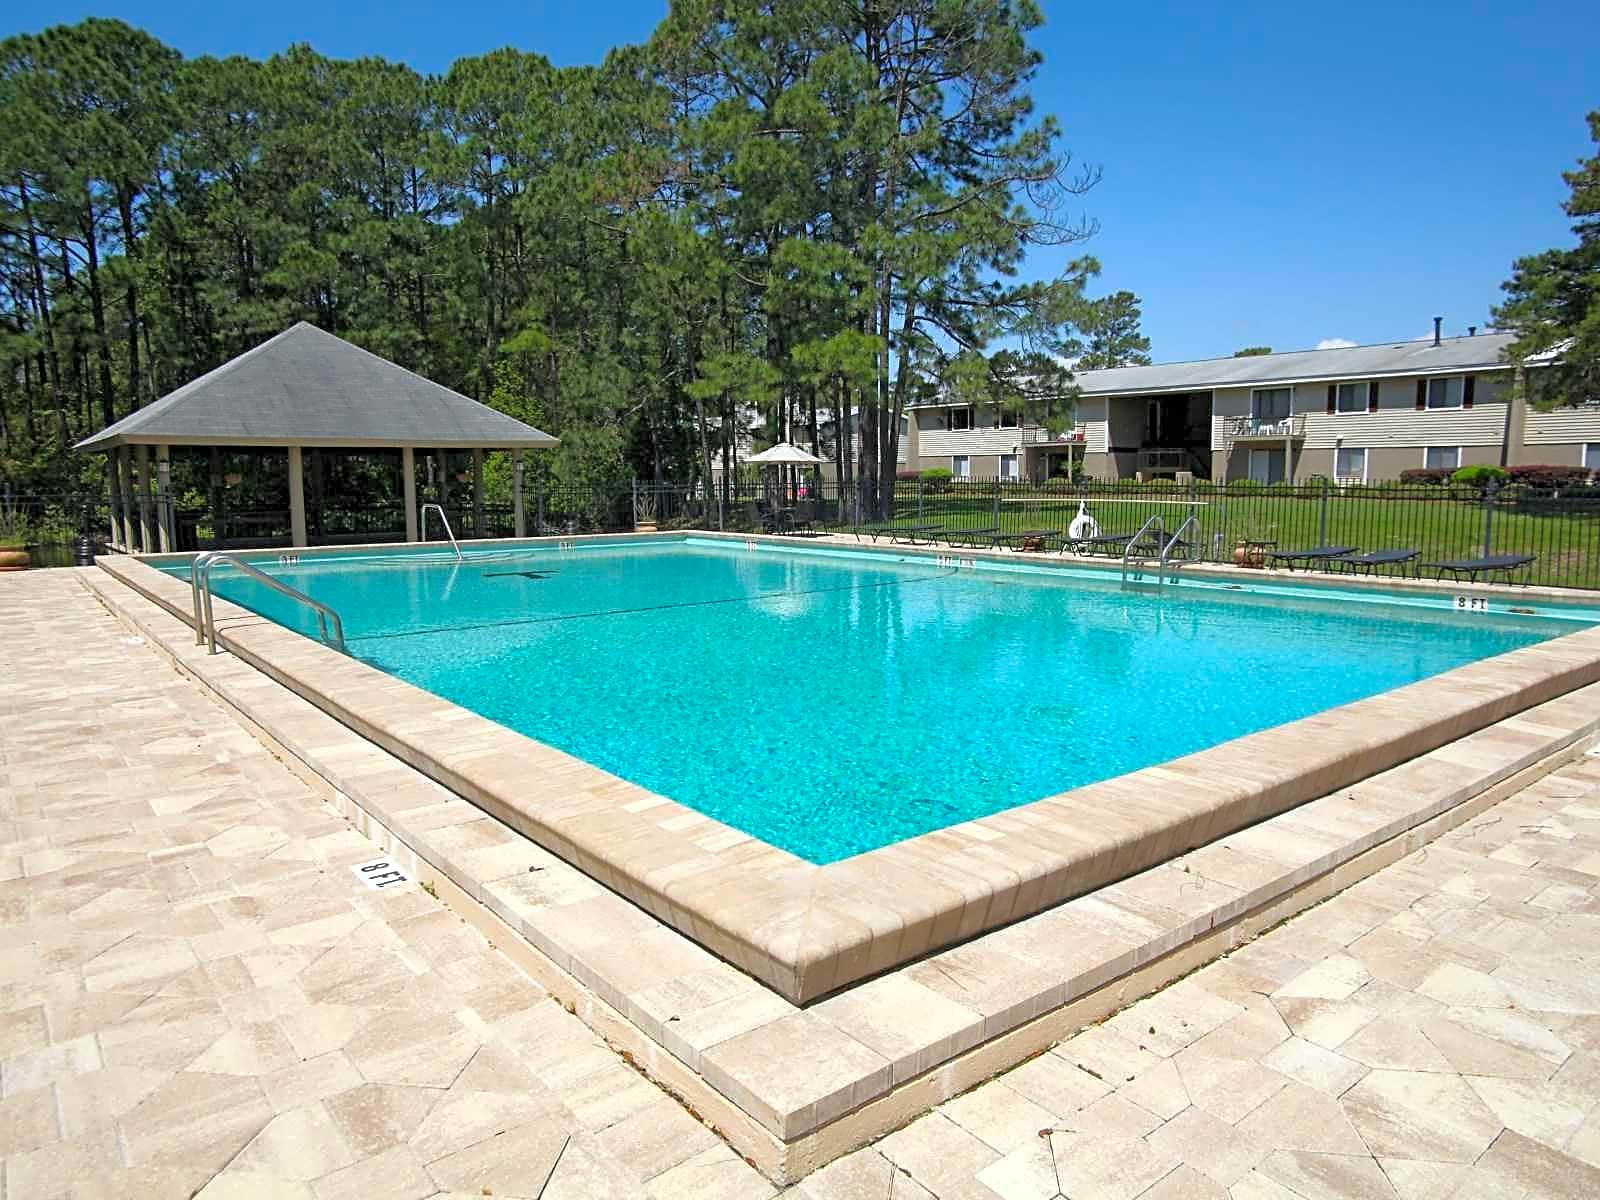 Photo: Panama City Apartment for Rent - $699.00 / month; 2 Bd & 1 Ba